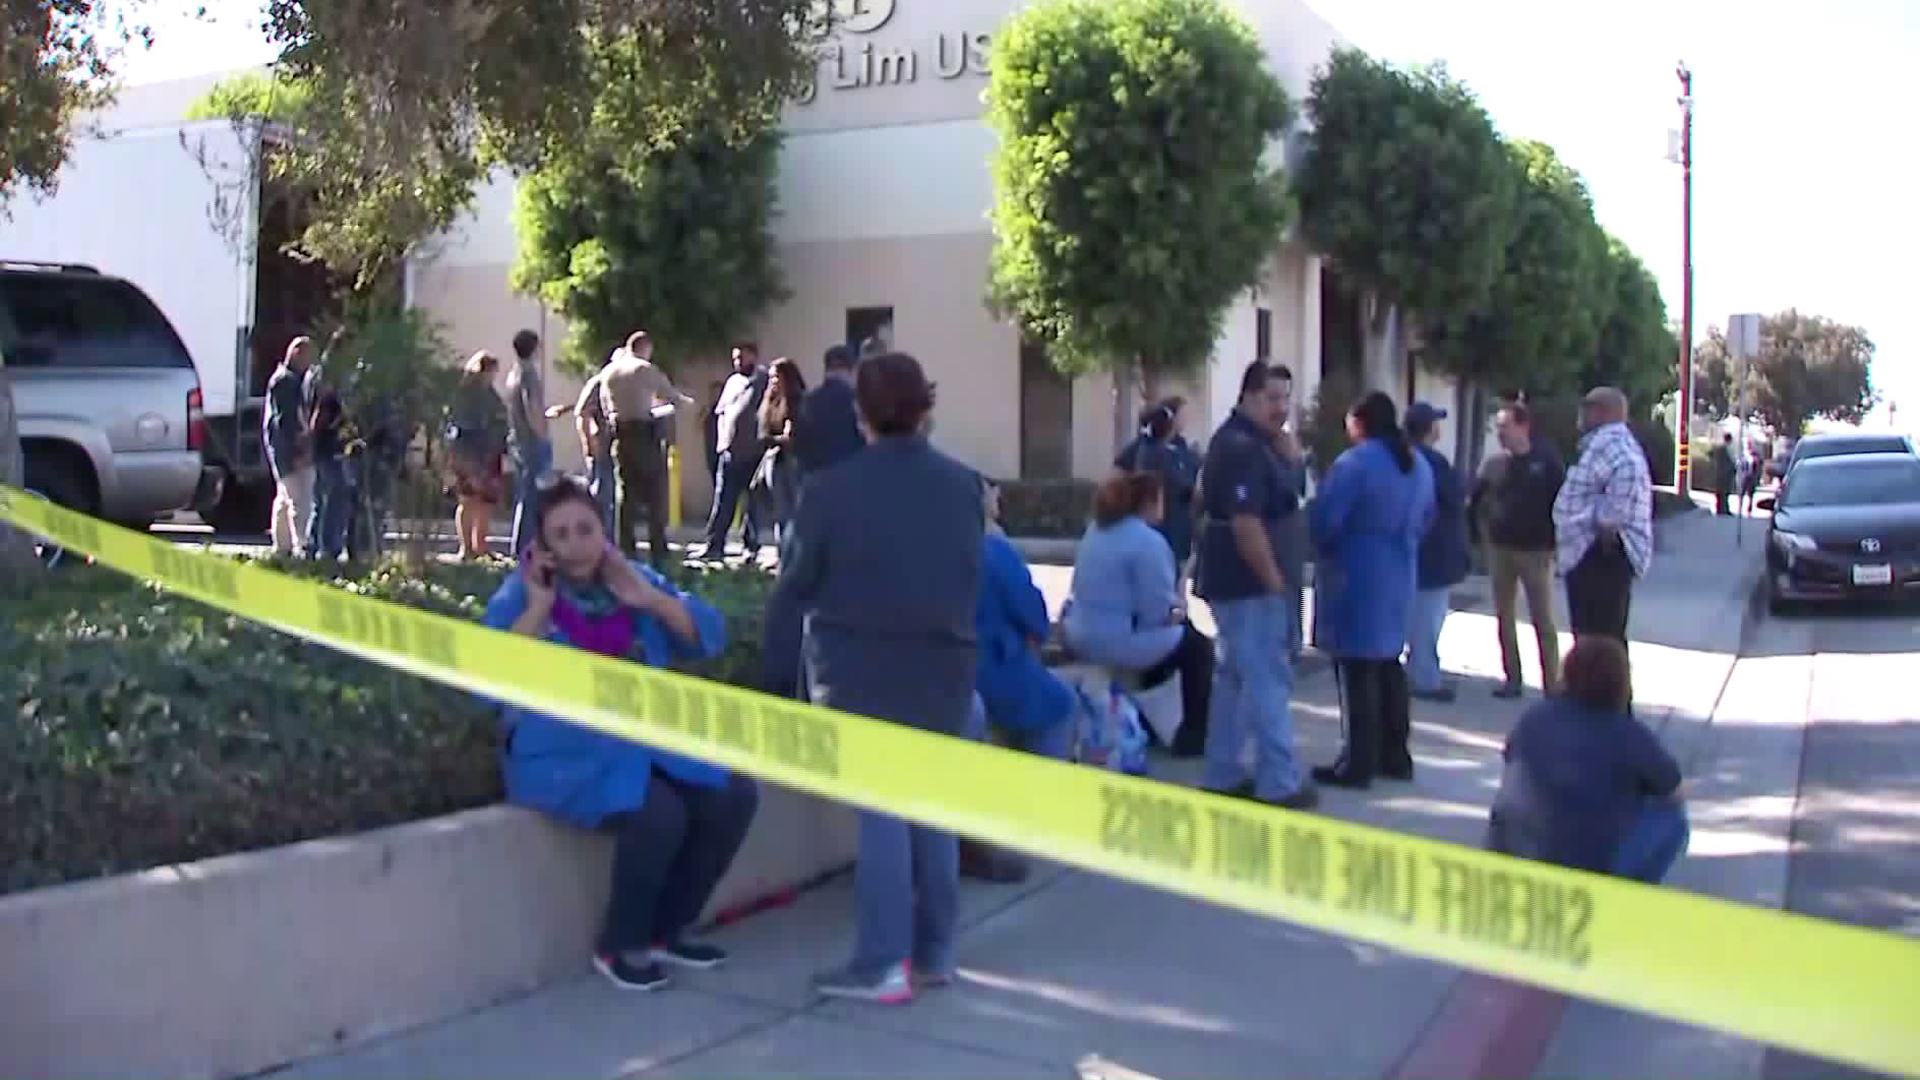 Workers wait outside after a fatal shooting at a business in Paramount on Nov. 8, 2019. (Credit: KTLA)